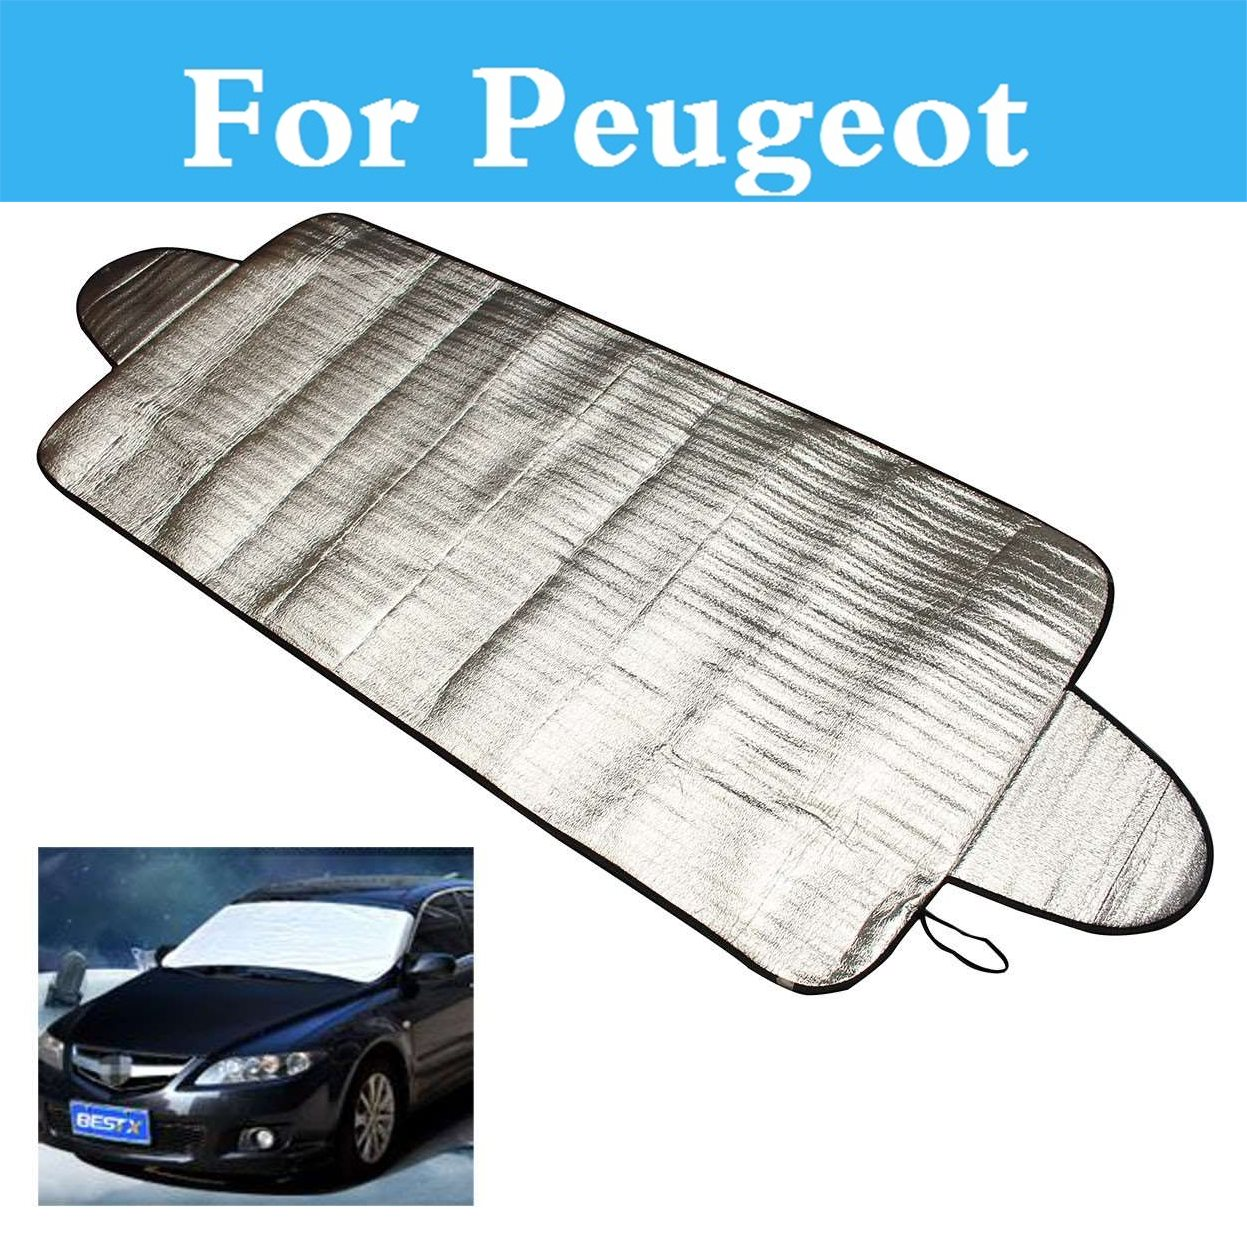 Car Cover Fits Peugeot 106 Premium Quality UV Protection